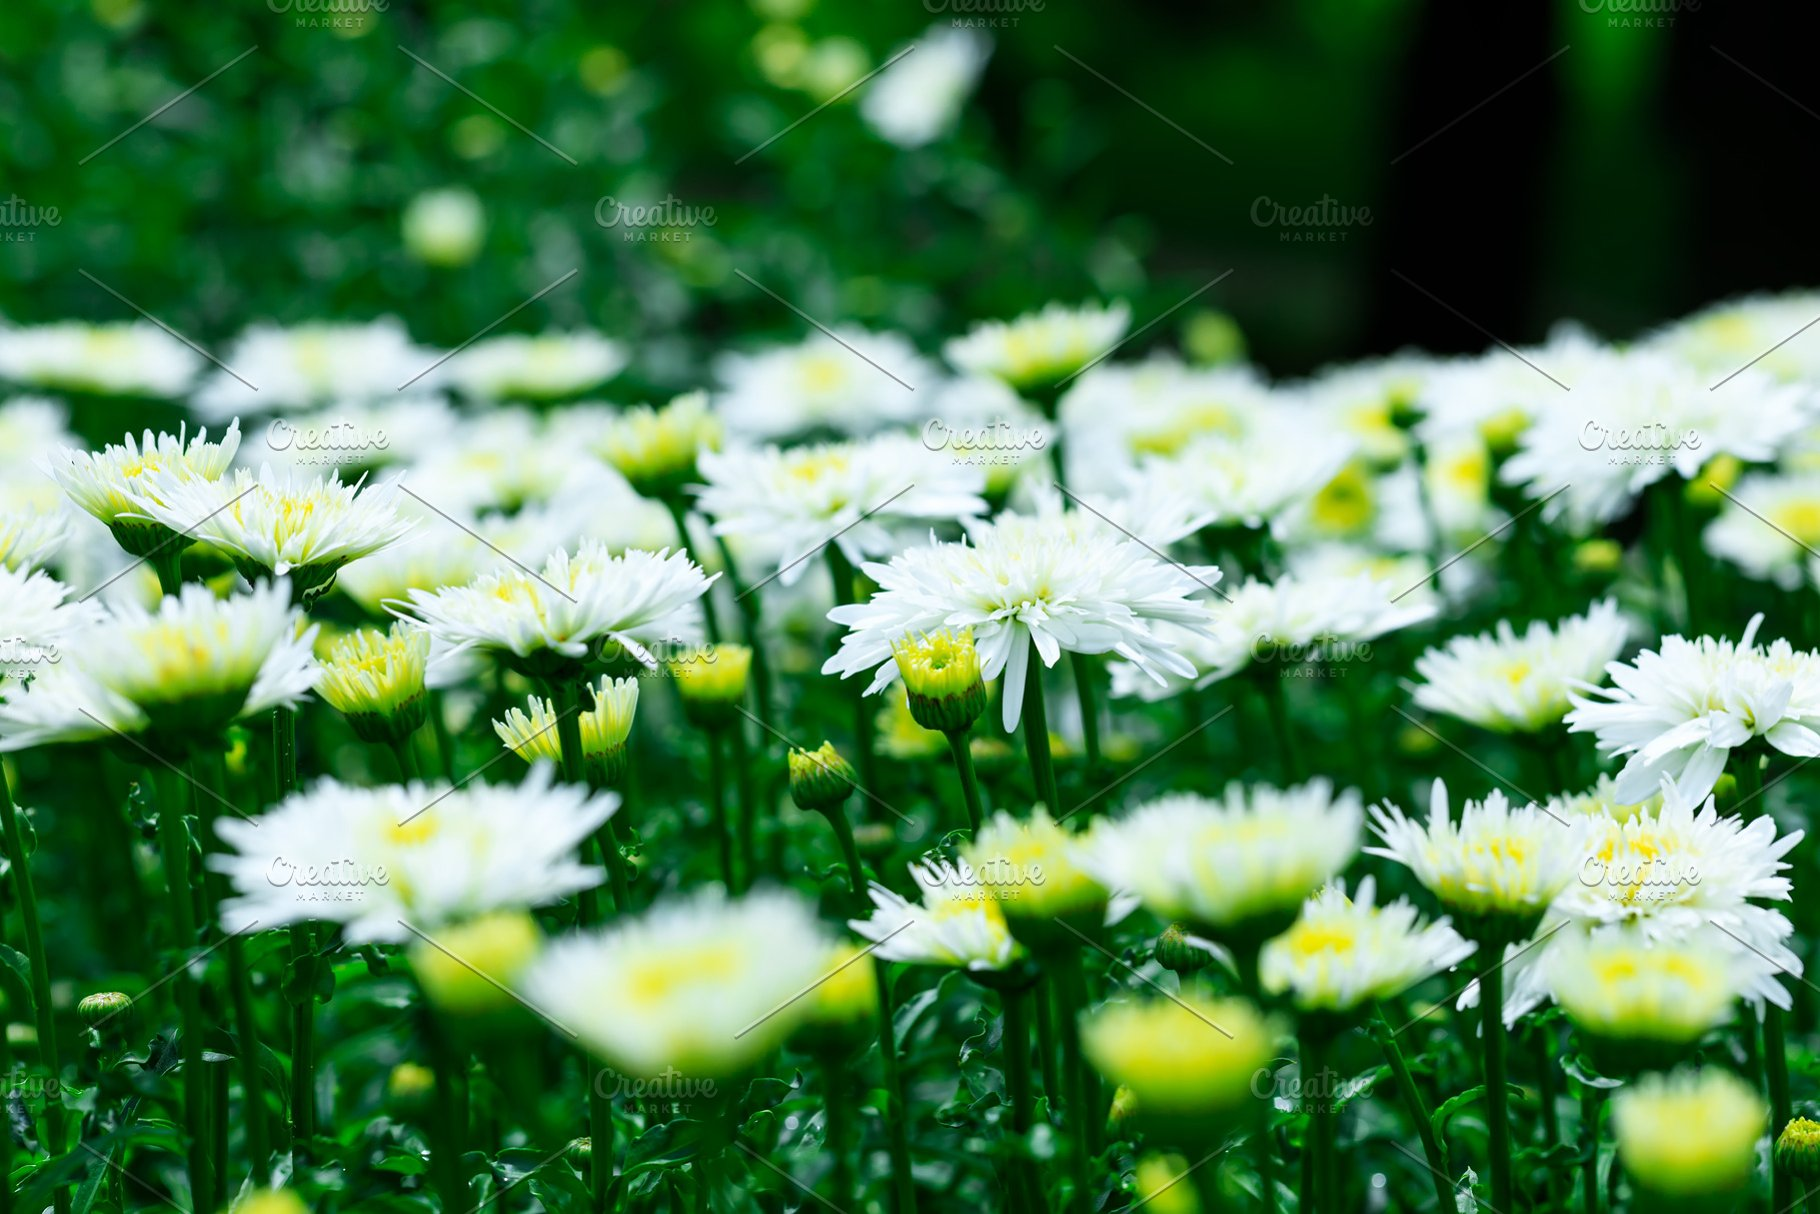 White Chrysanthemums Flowers High Quality Nature Stock Photos